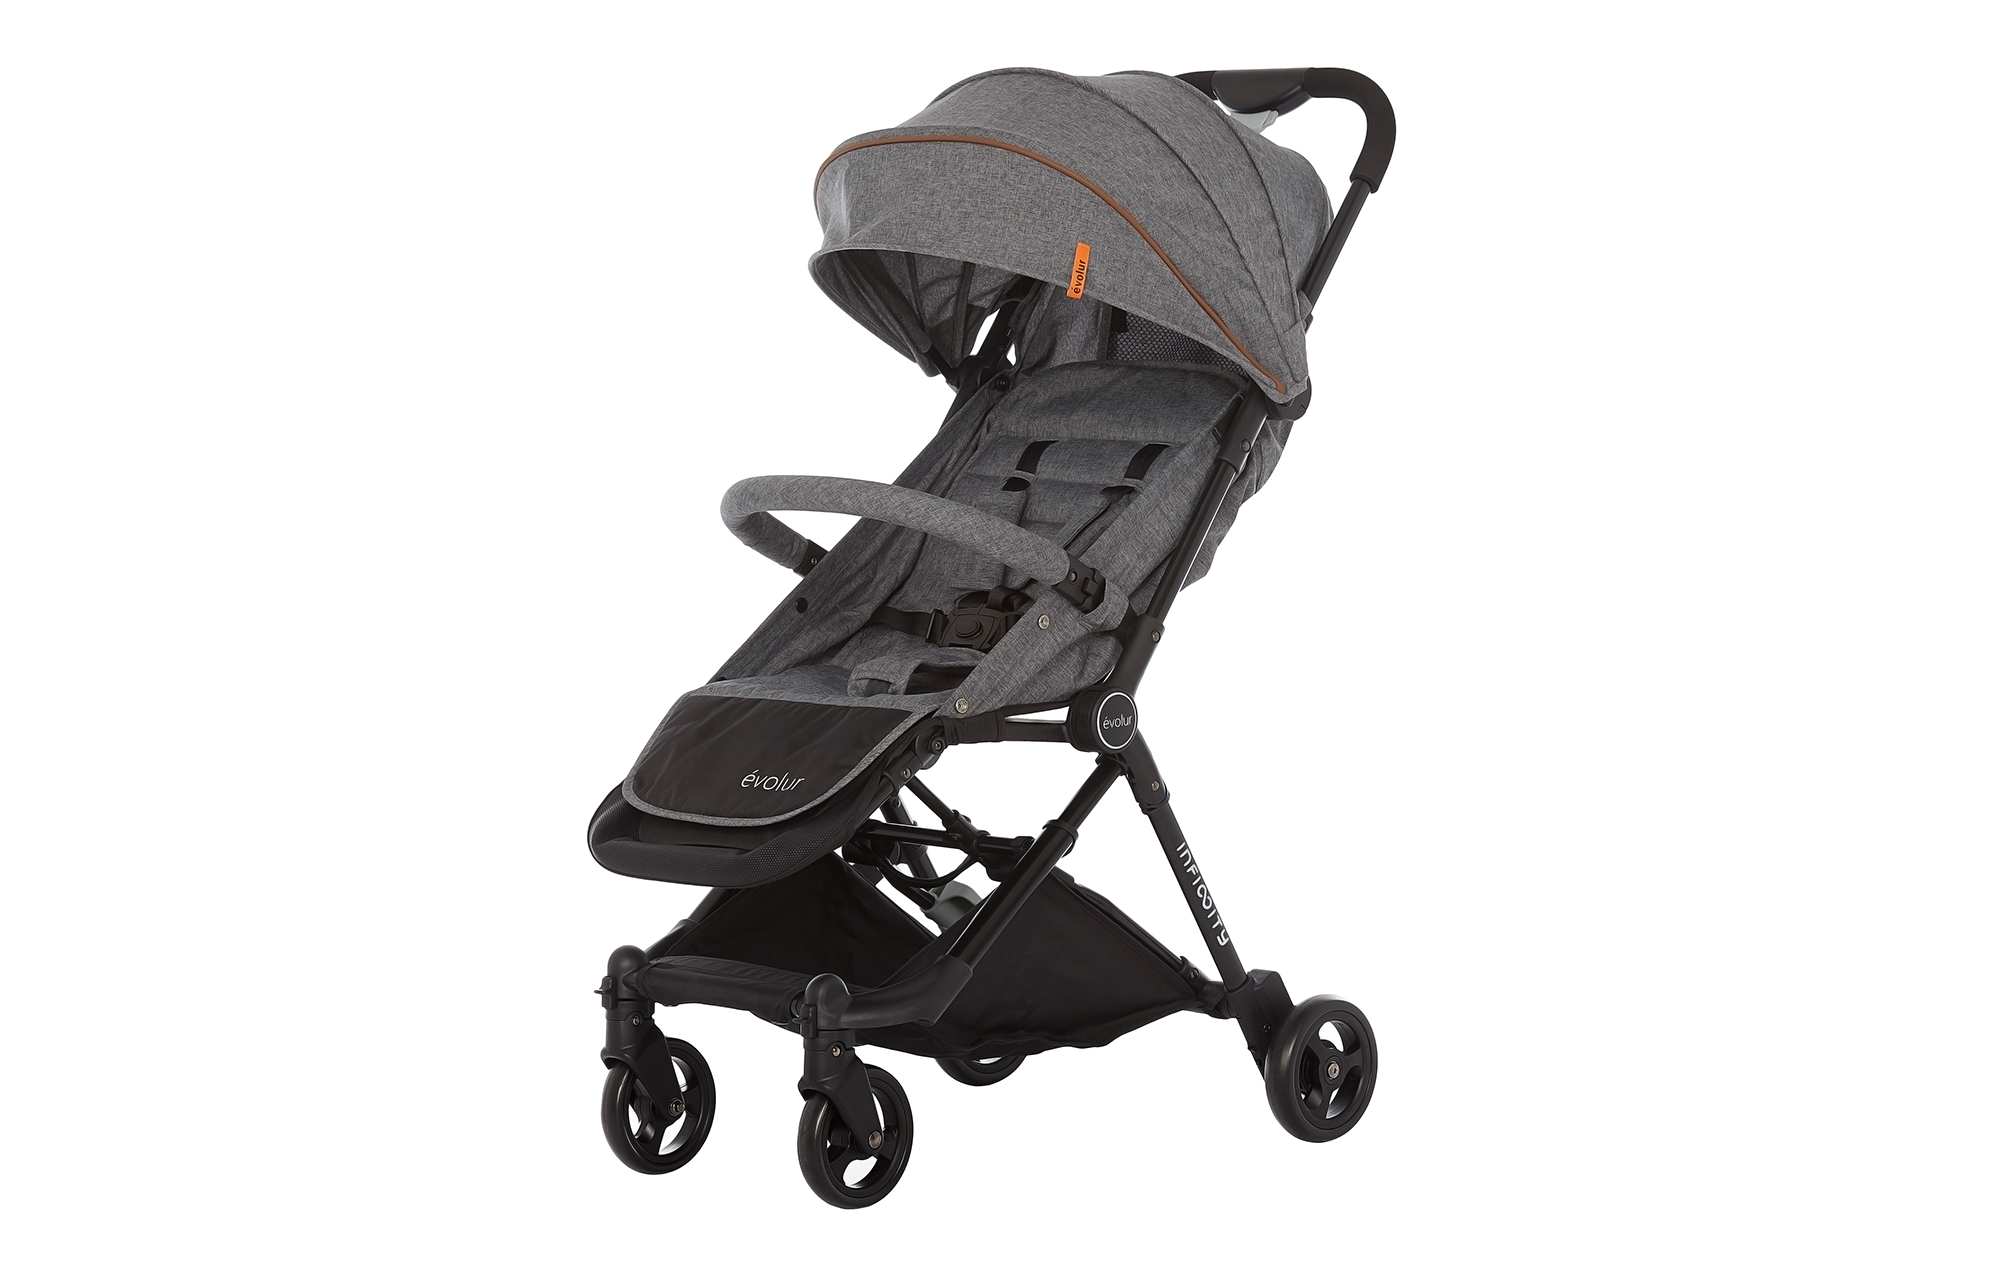 Evolur Infinity Convertible Stroller in Grey